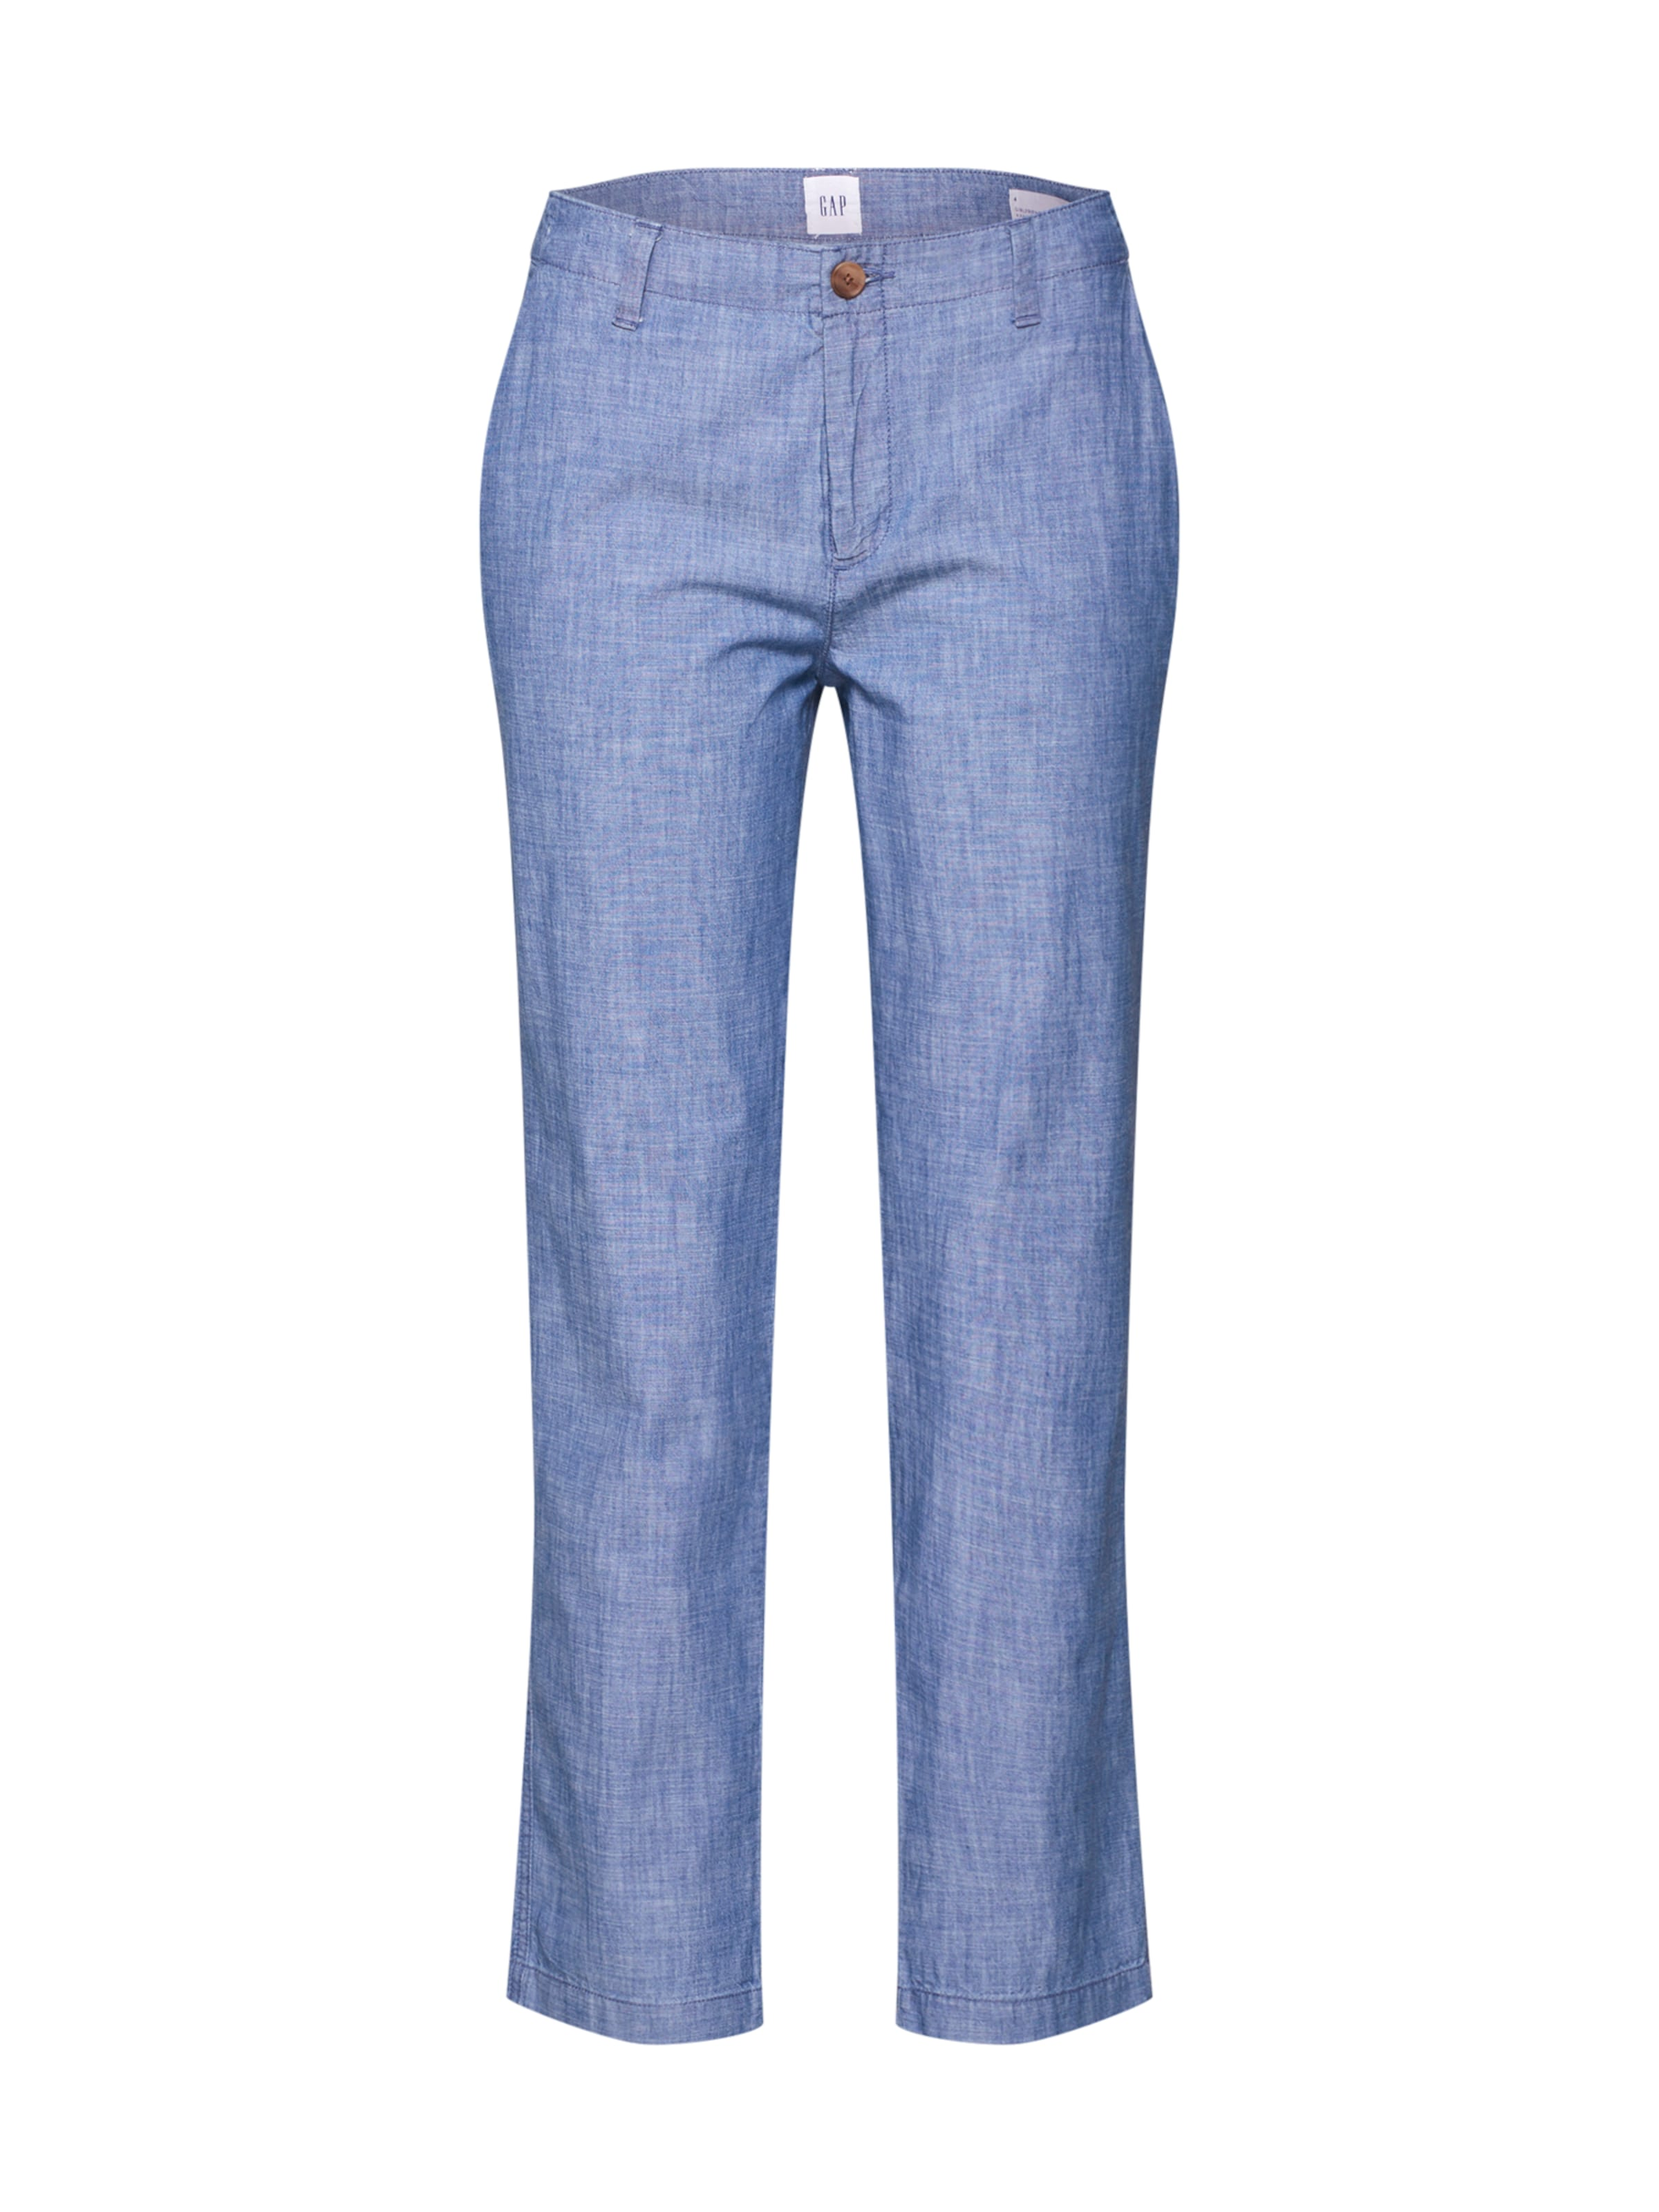 Indigo girlfriend Chambray' Gap 'v Khaki Hose In NwPknOX80